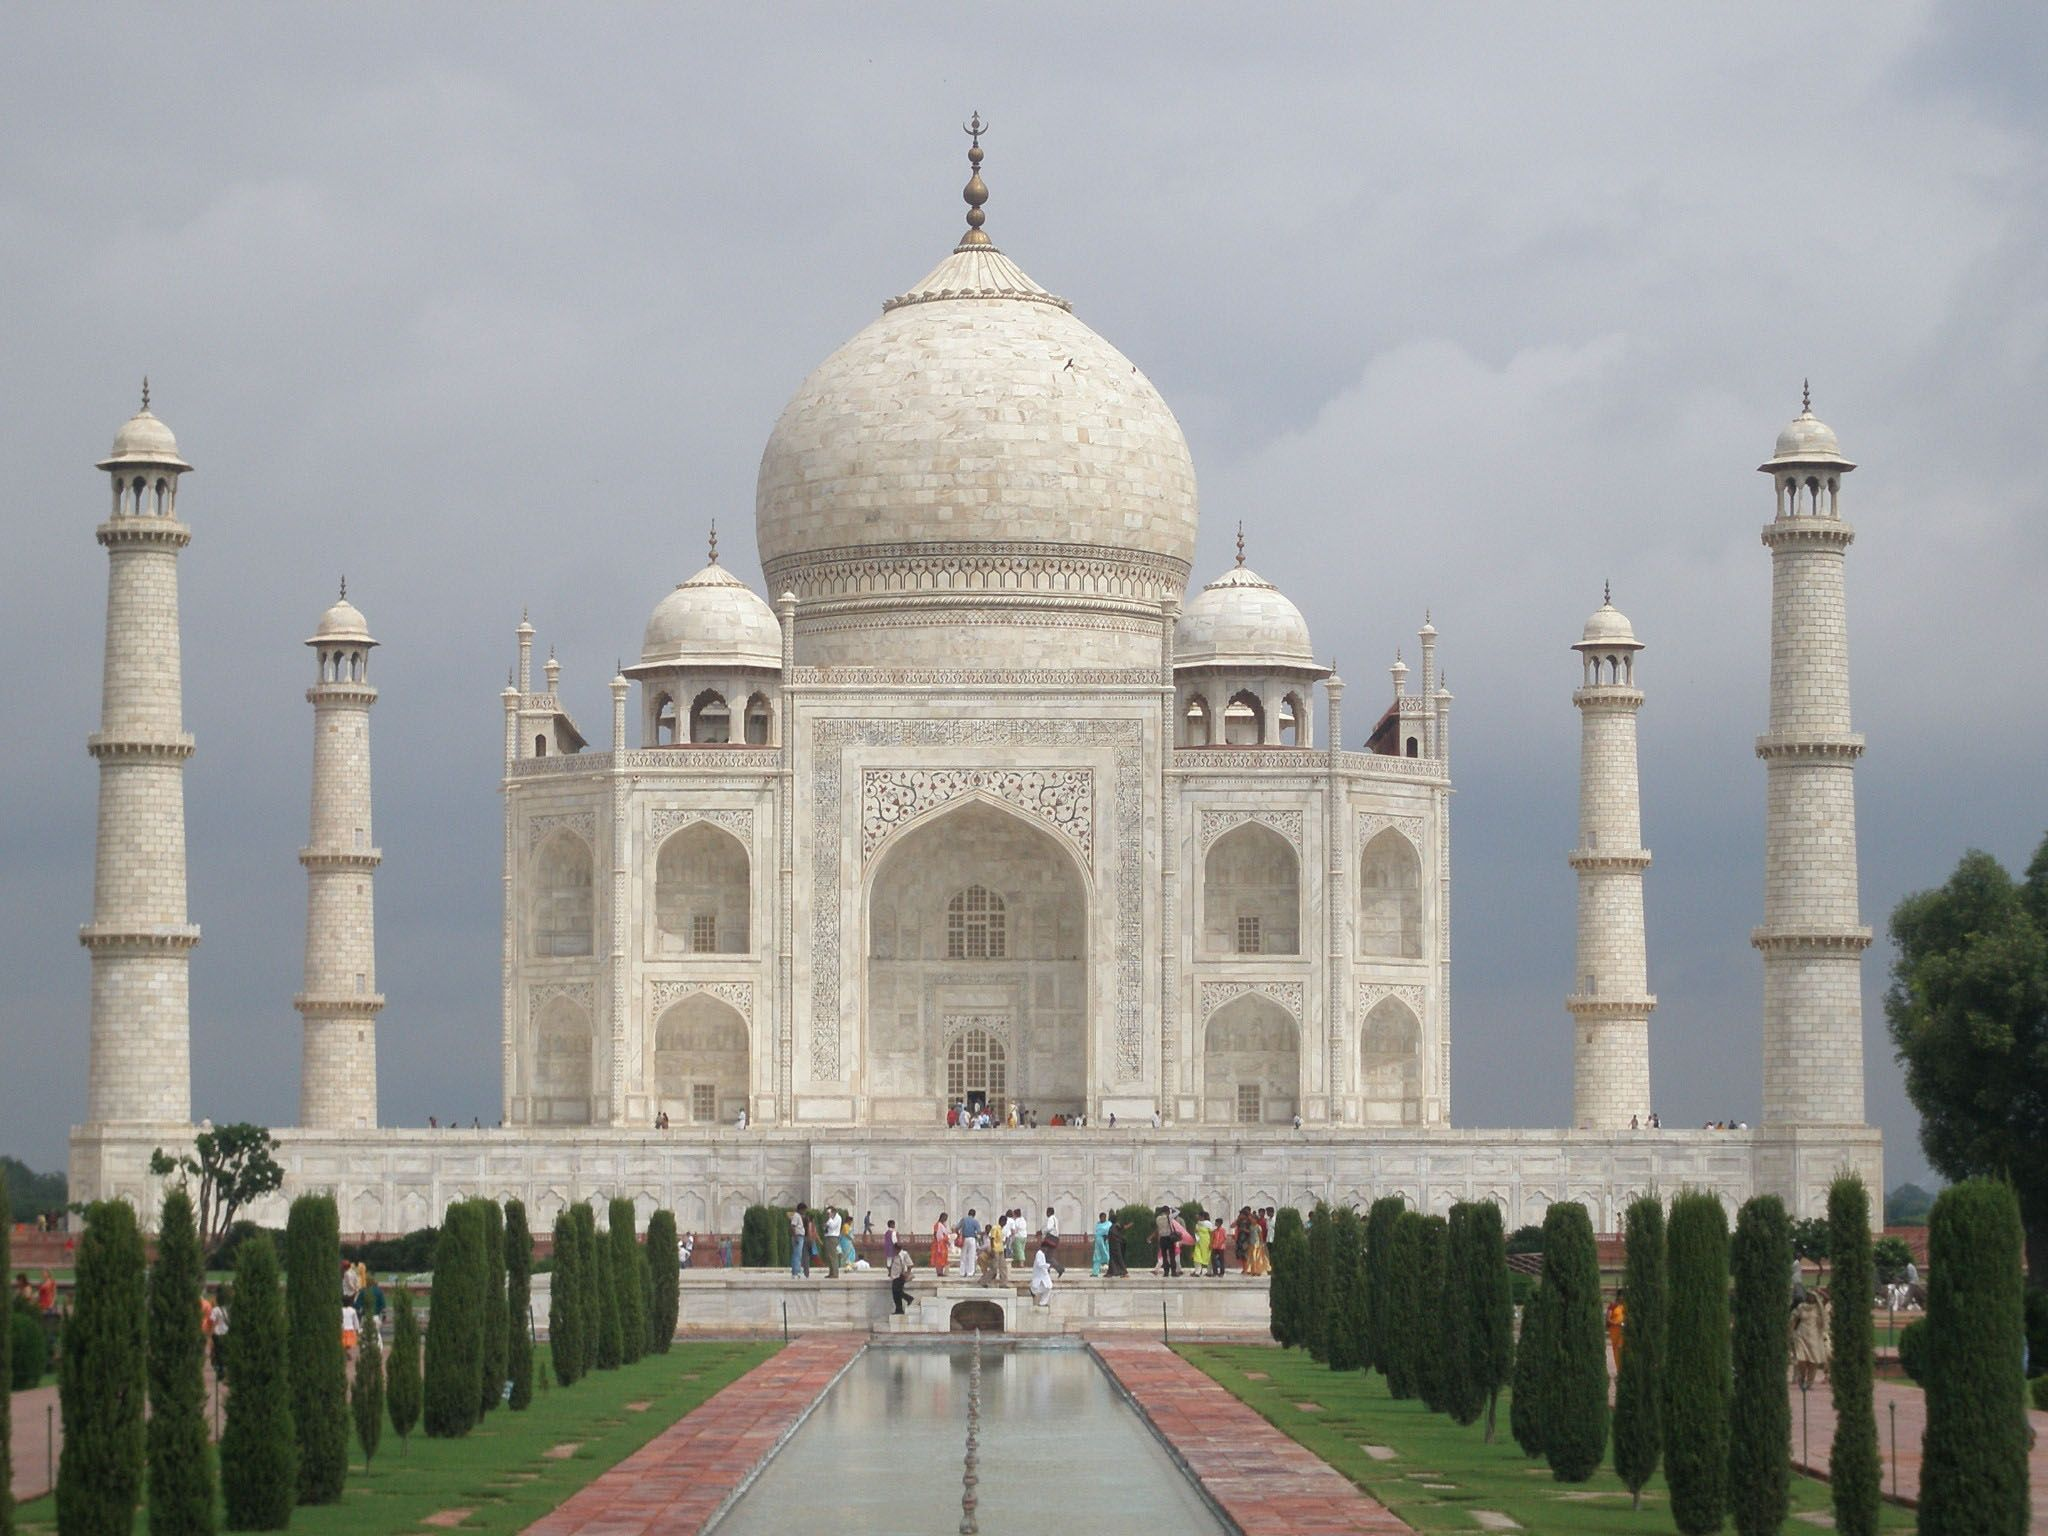 taj mahal hd wallpaper live taj mahal hd photos pc hd wallpapers